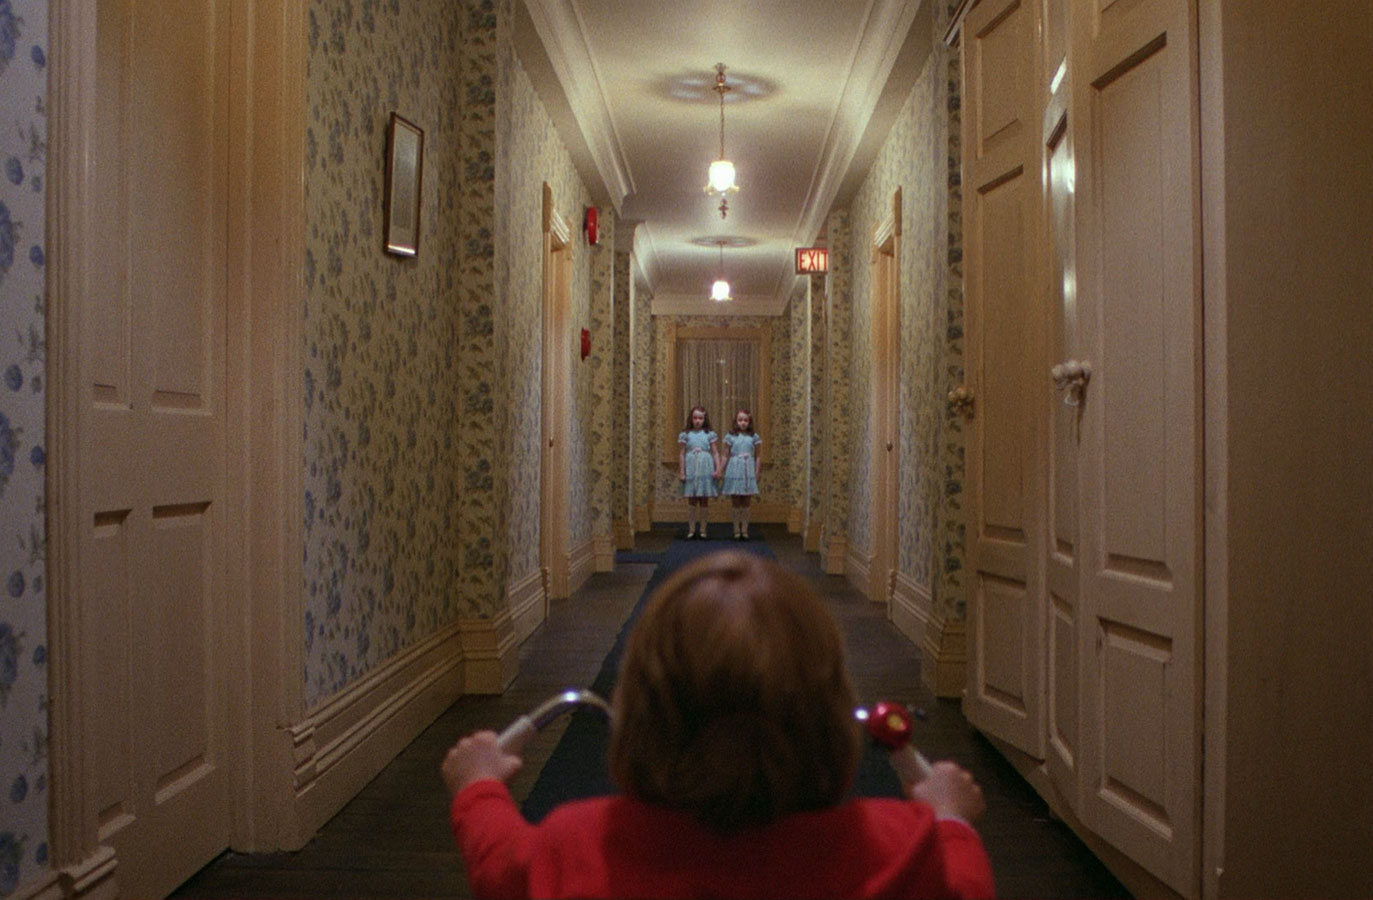 Here's Johnny! The Shining could be spun into either a sequel or a prequel. A sequel could focus on a new family being plagued by whatever haunts the hotel or a prequel could delve into what happened originally in the famed hotel to cause the occupants to go insane.